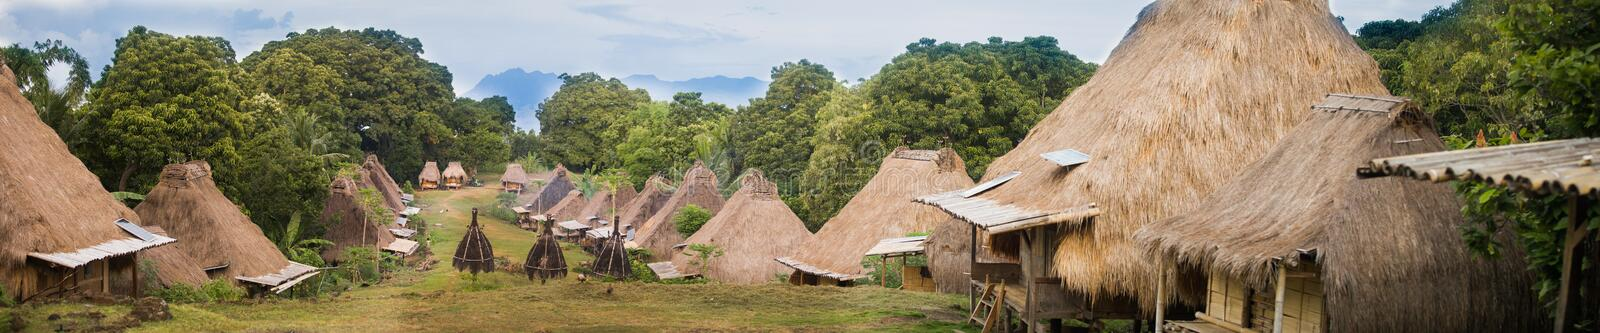 Traditional indonesian village stock photography